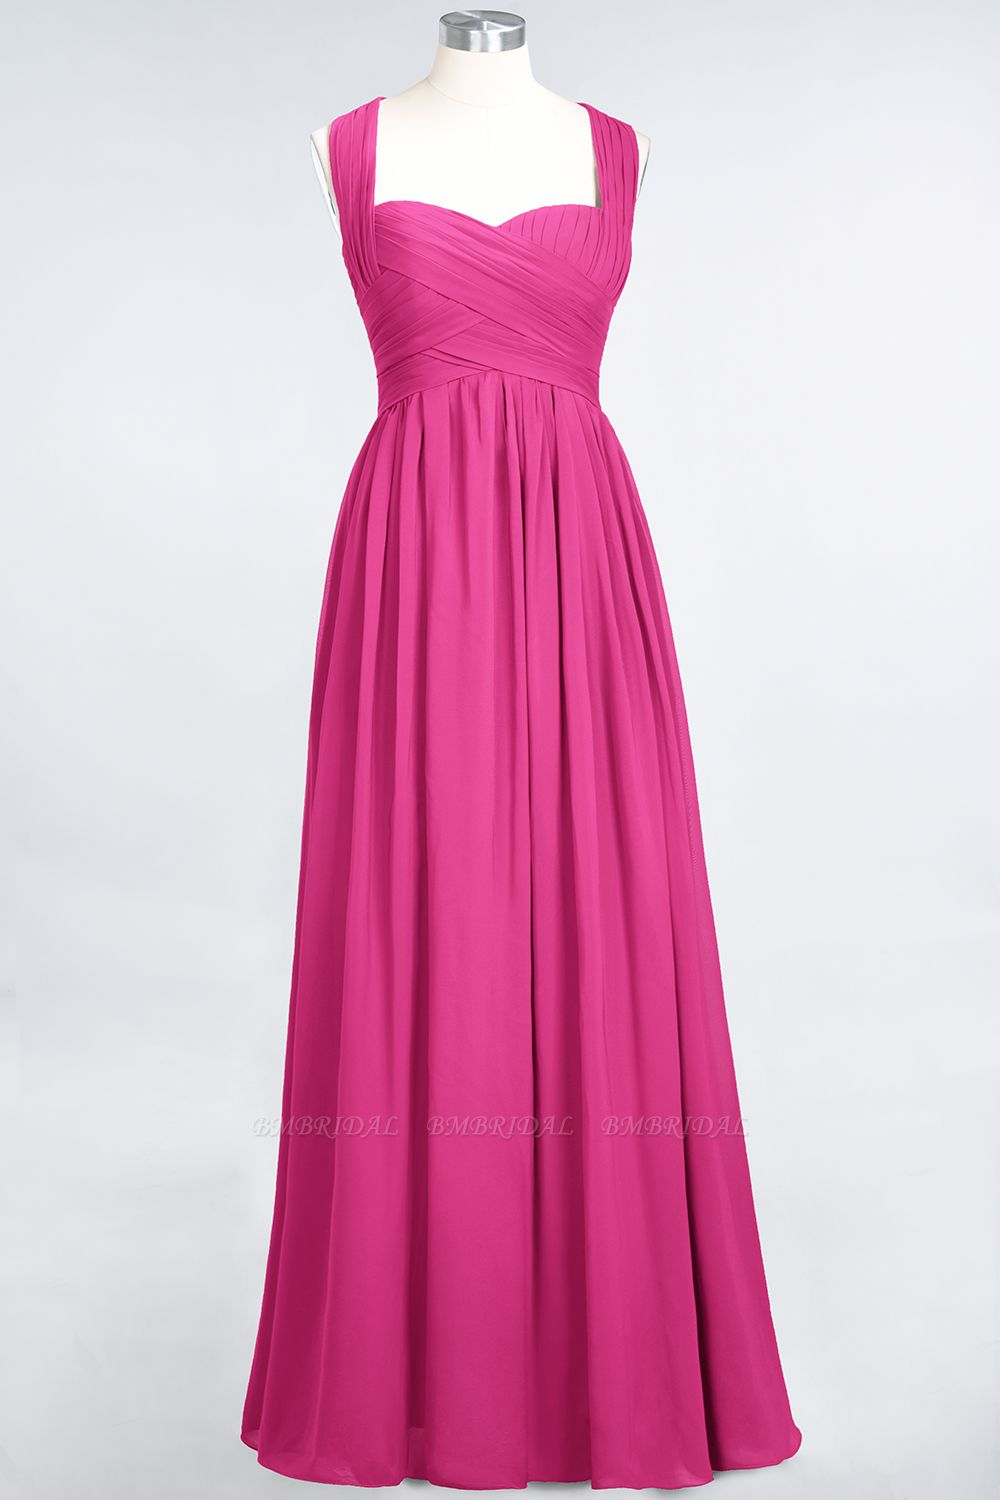 Chic Tiered Sweetheart Cap-Sleeves Bungurdy Bridesmaid Dresses